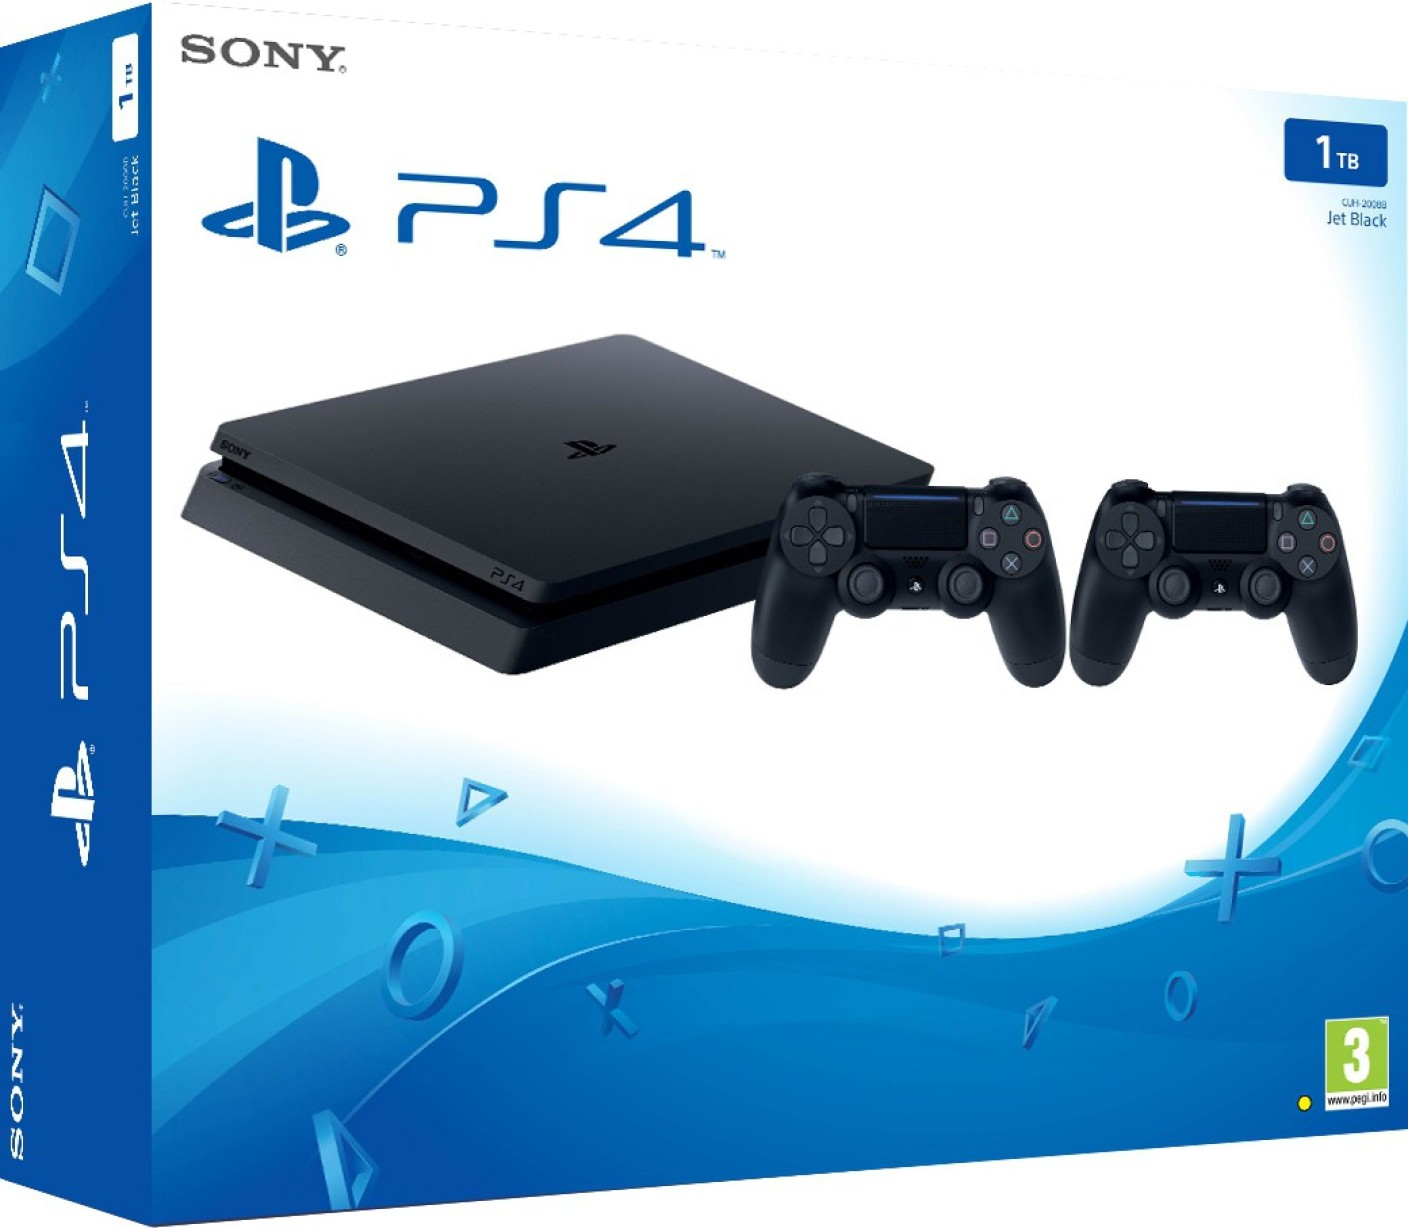 sony playstation 4 ps4 slim 1 tb price in india buy sony playstation 4 ps4 slim 1 tb jet. Black Bedroom Furniture Sets. Home Design Ideas